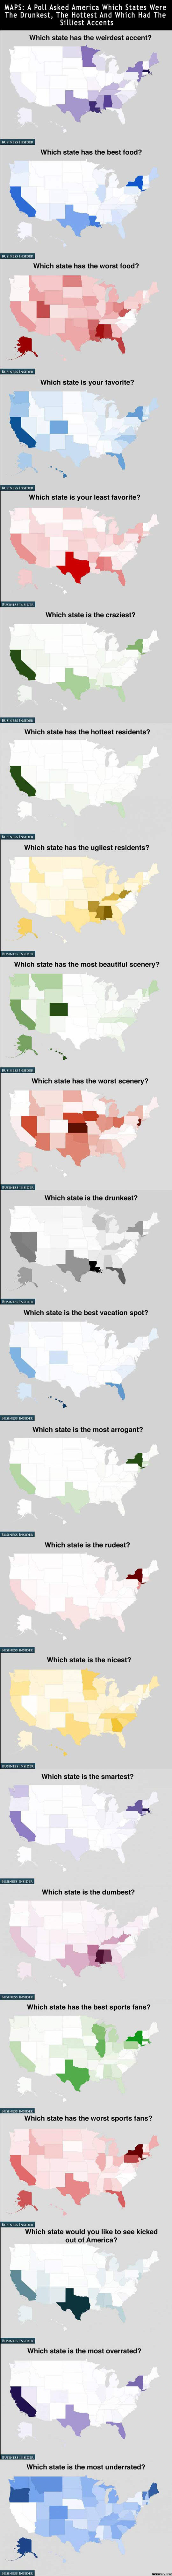 How Americans Feel About Every State